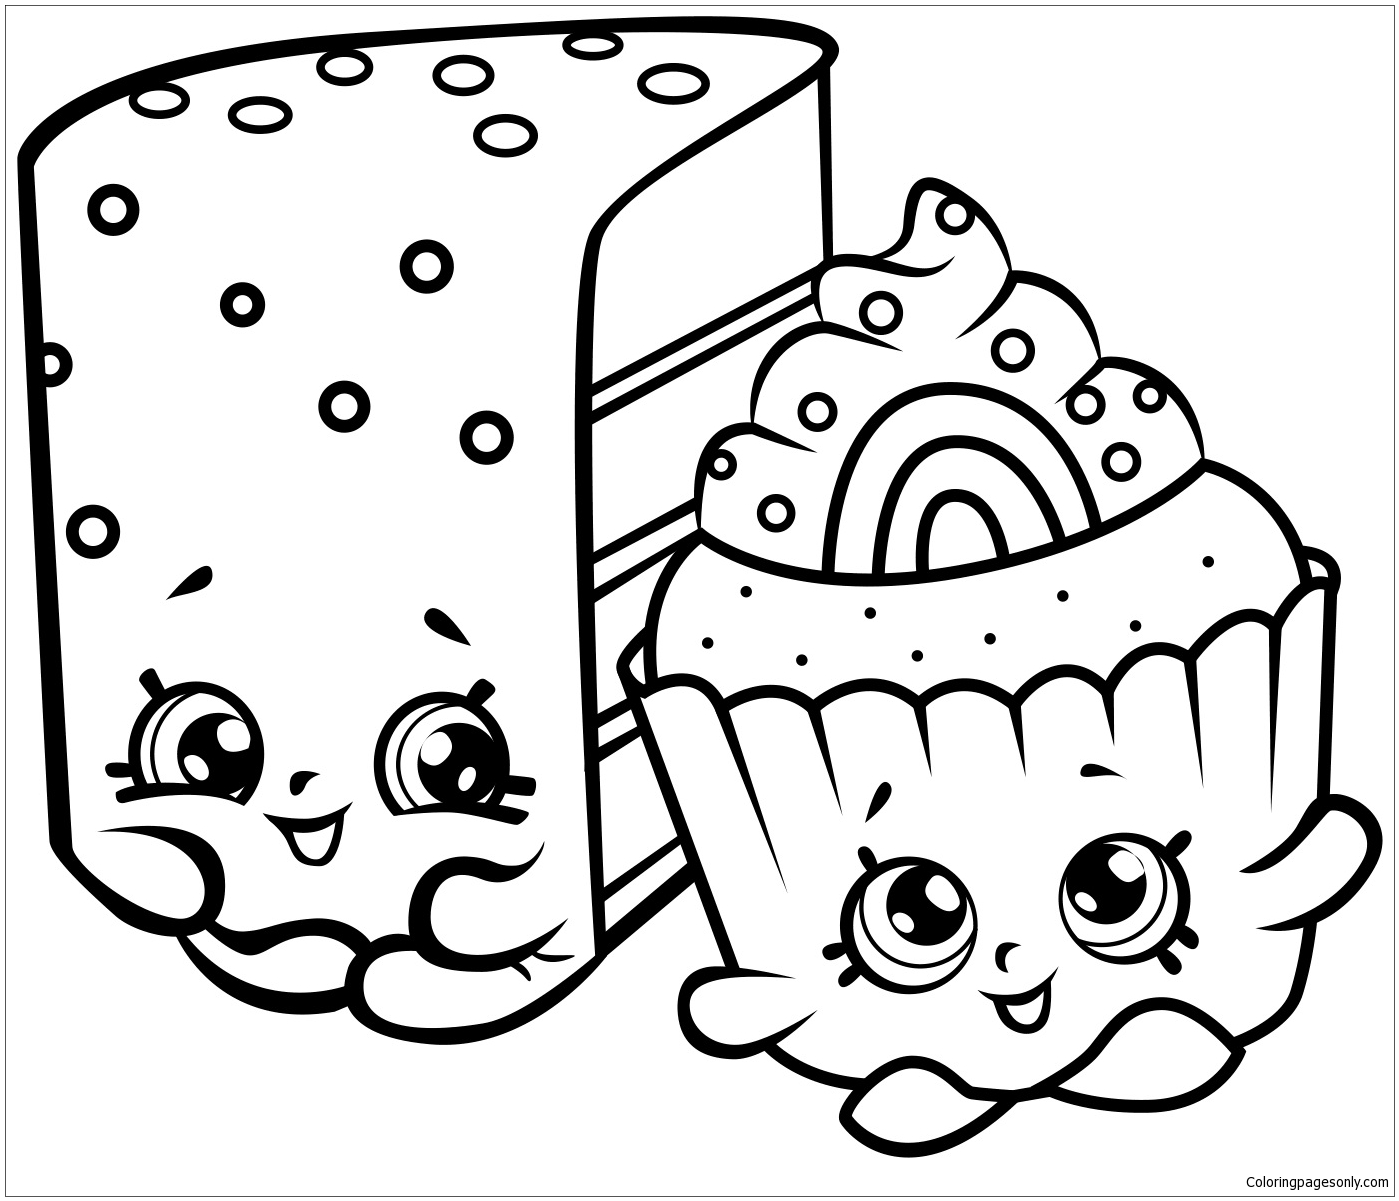 Cute Cakes Shopkins Coloring Page Free Coloring Pages Online